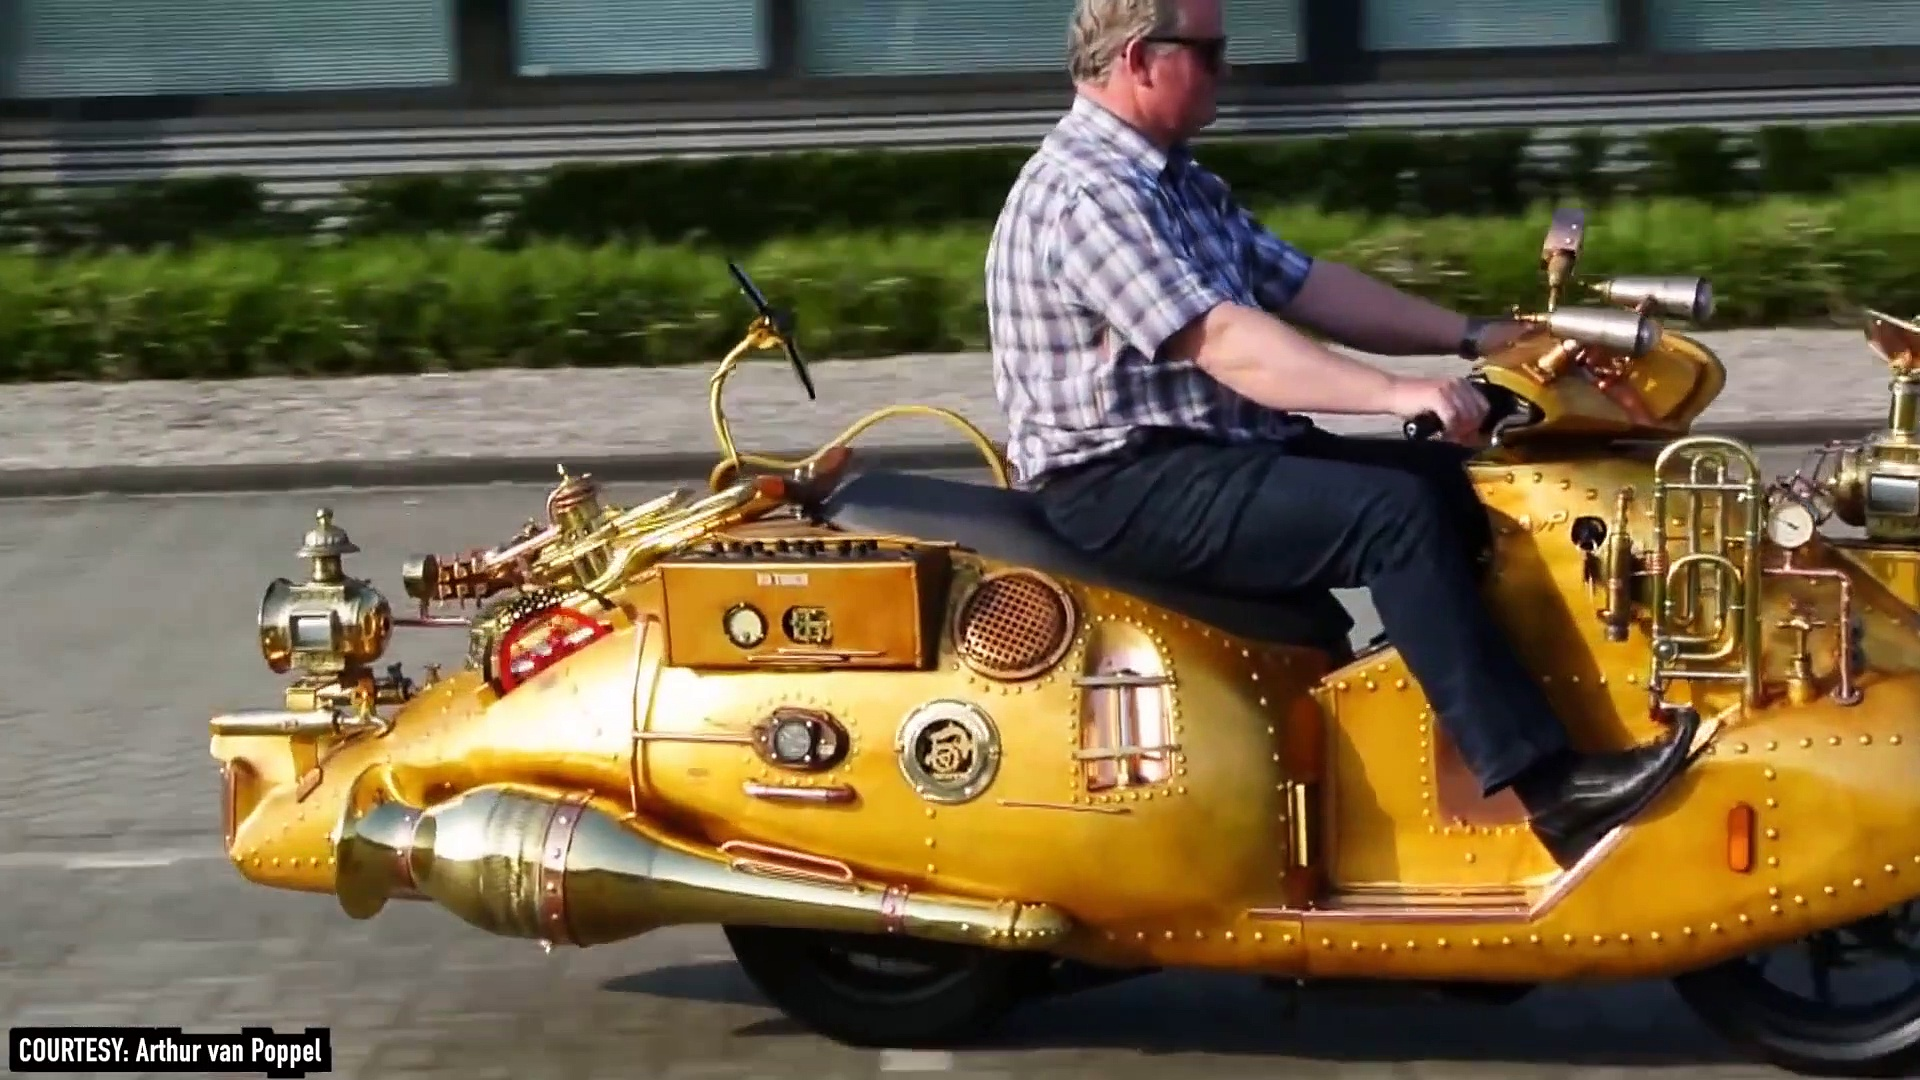 10 CRAZY MotorCycles